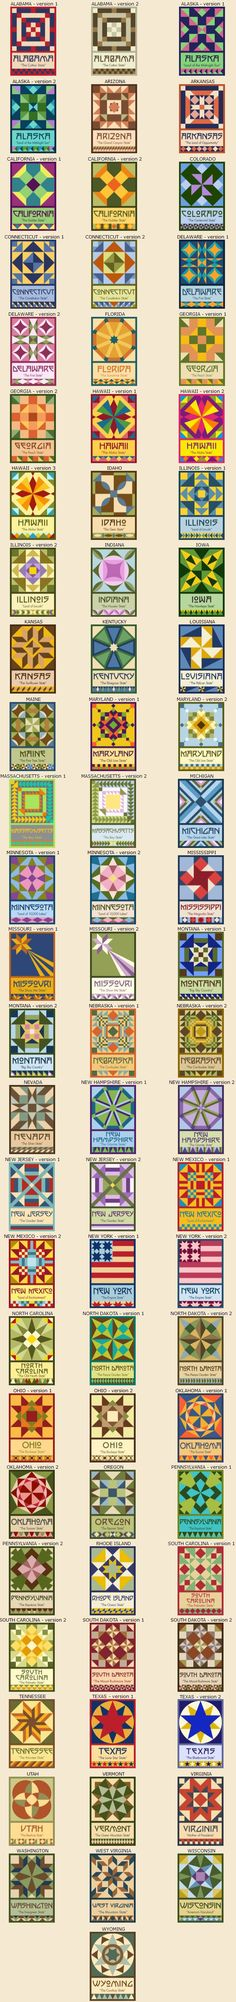 50 State Quilt Block Series by Susan Davis, owner of Olde American Antiques and American Quilt Blocks - House Interior Design Barn Quilt Designs, Barn Quilt Patterns, Pattern Blocks, Quilting Designs, Quilting Patterns, Sewing Patterns, Sampler Quilts, Star Quilts, Quilt Blocks